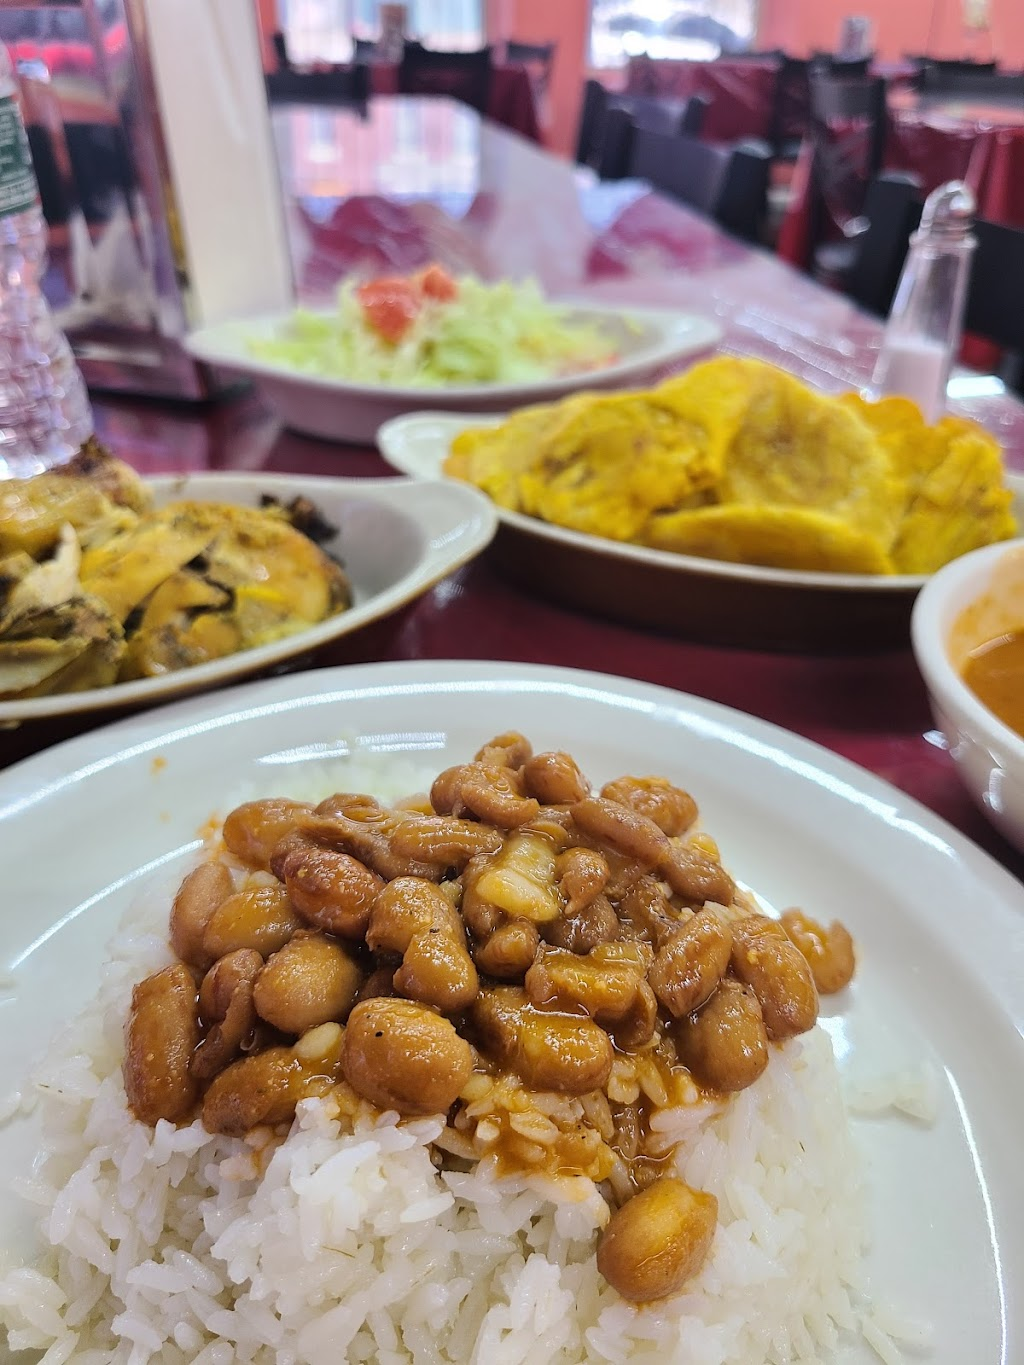 Jhoandra Restaurant | meal delivery | 3661 N 6th St, Philadelphia, PA 19140, USA | 2152251090 OR +1 215-225-1090